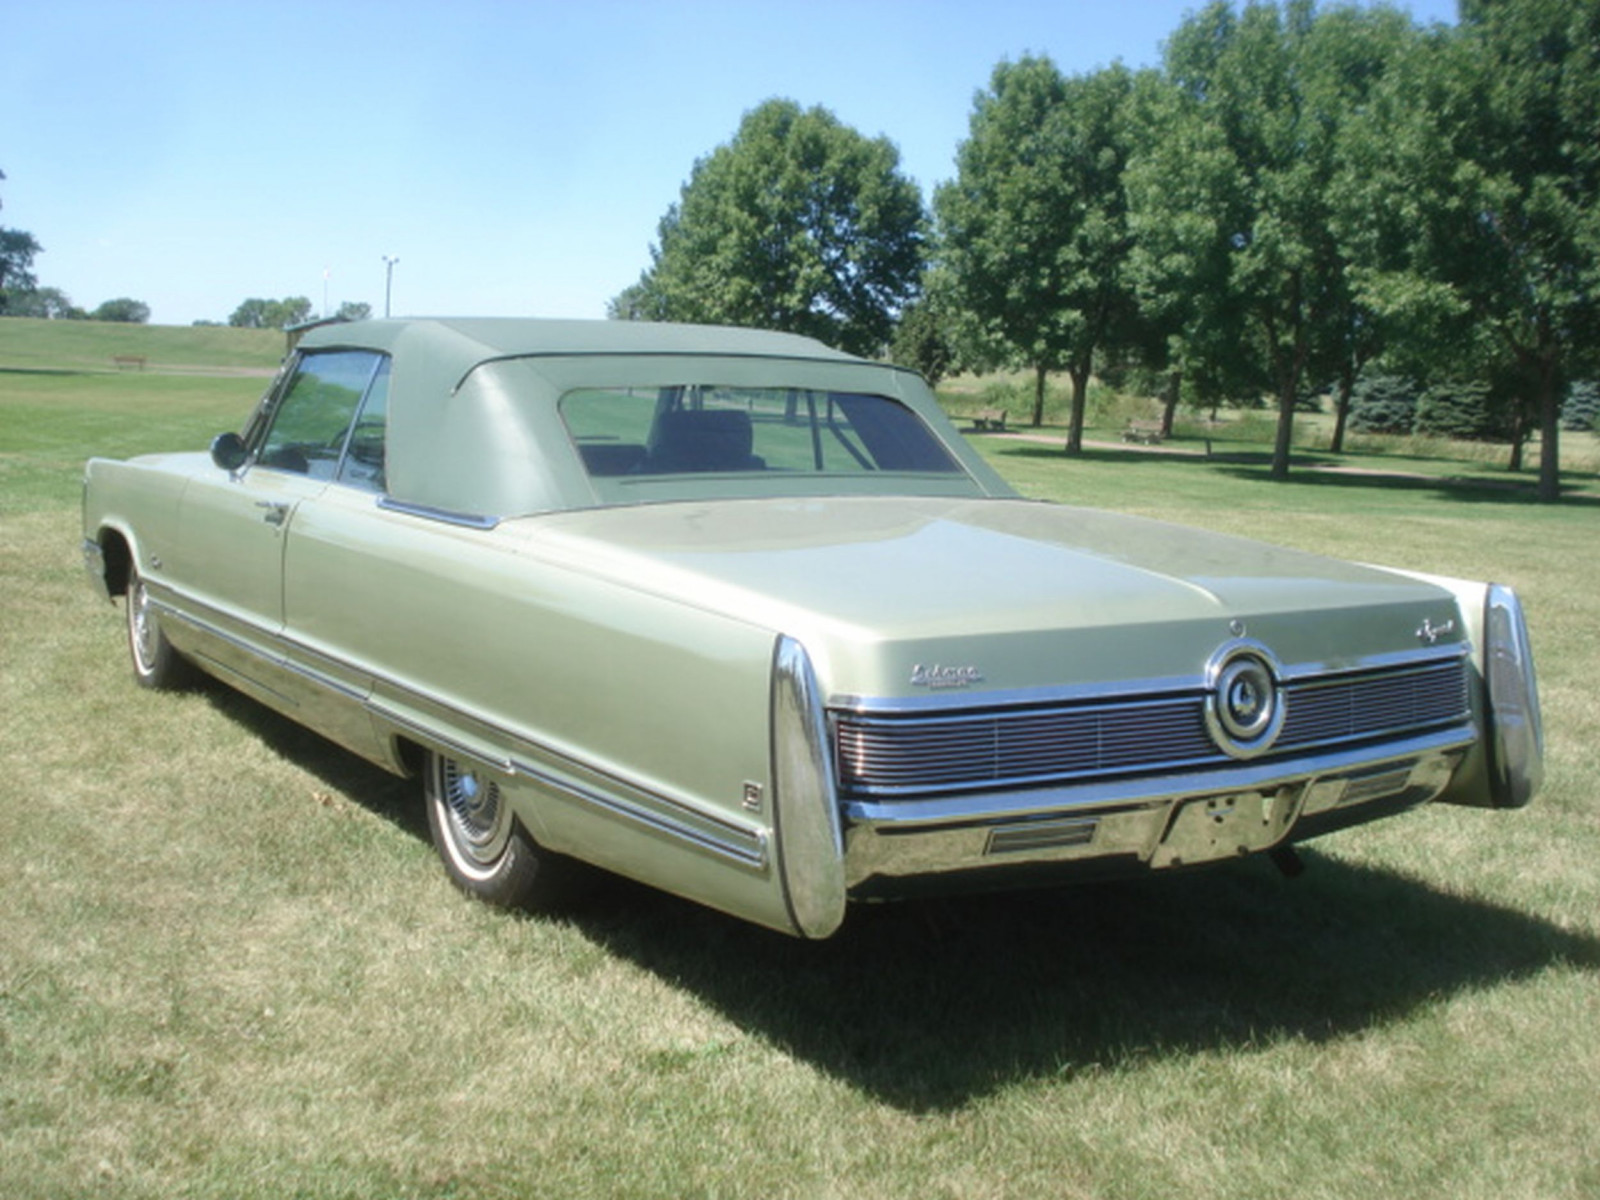 1968 Chrysler Imperial Crown Convertible - Image 10